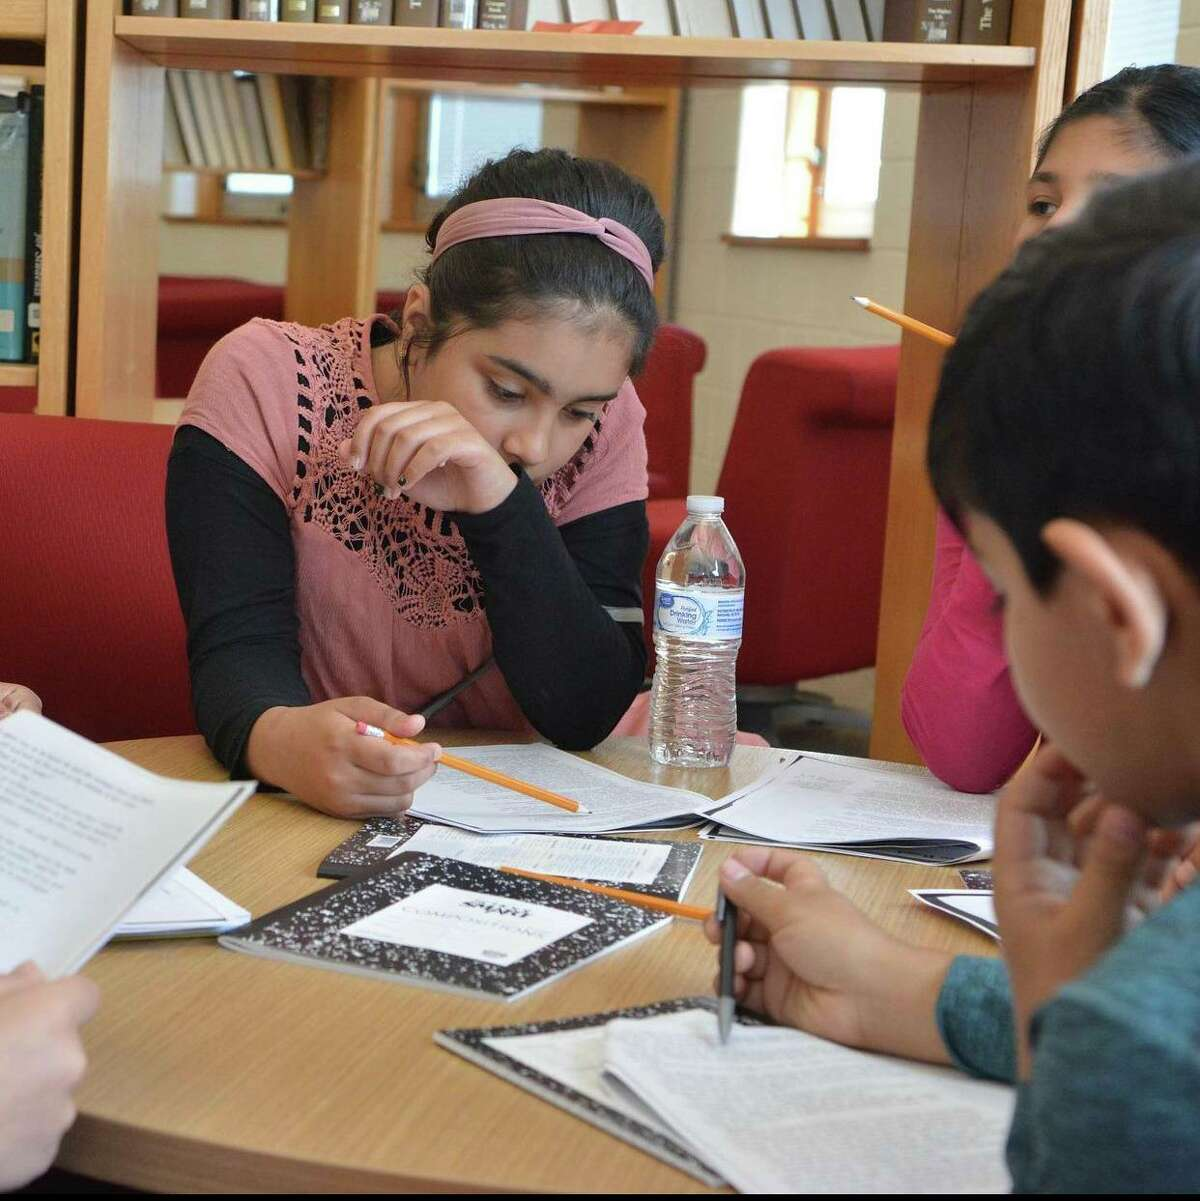 Danbury Area Refugee Assistance helps resettled refugees find employment, learn English, enroll their children in school, schedule medical visits and grocery shop, among other tasks.